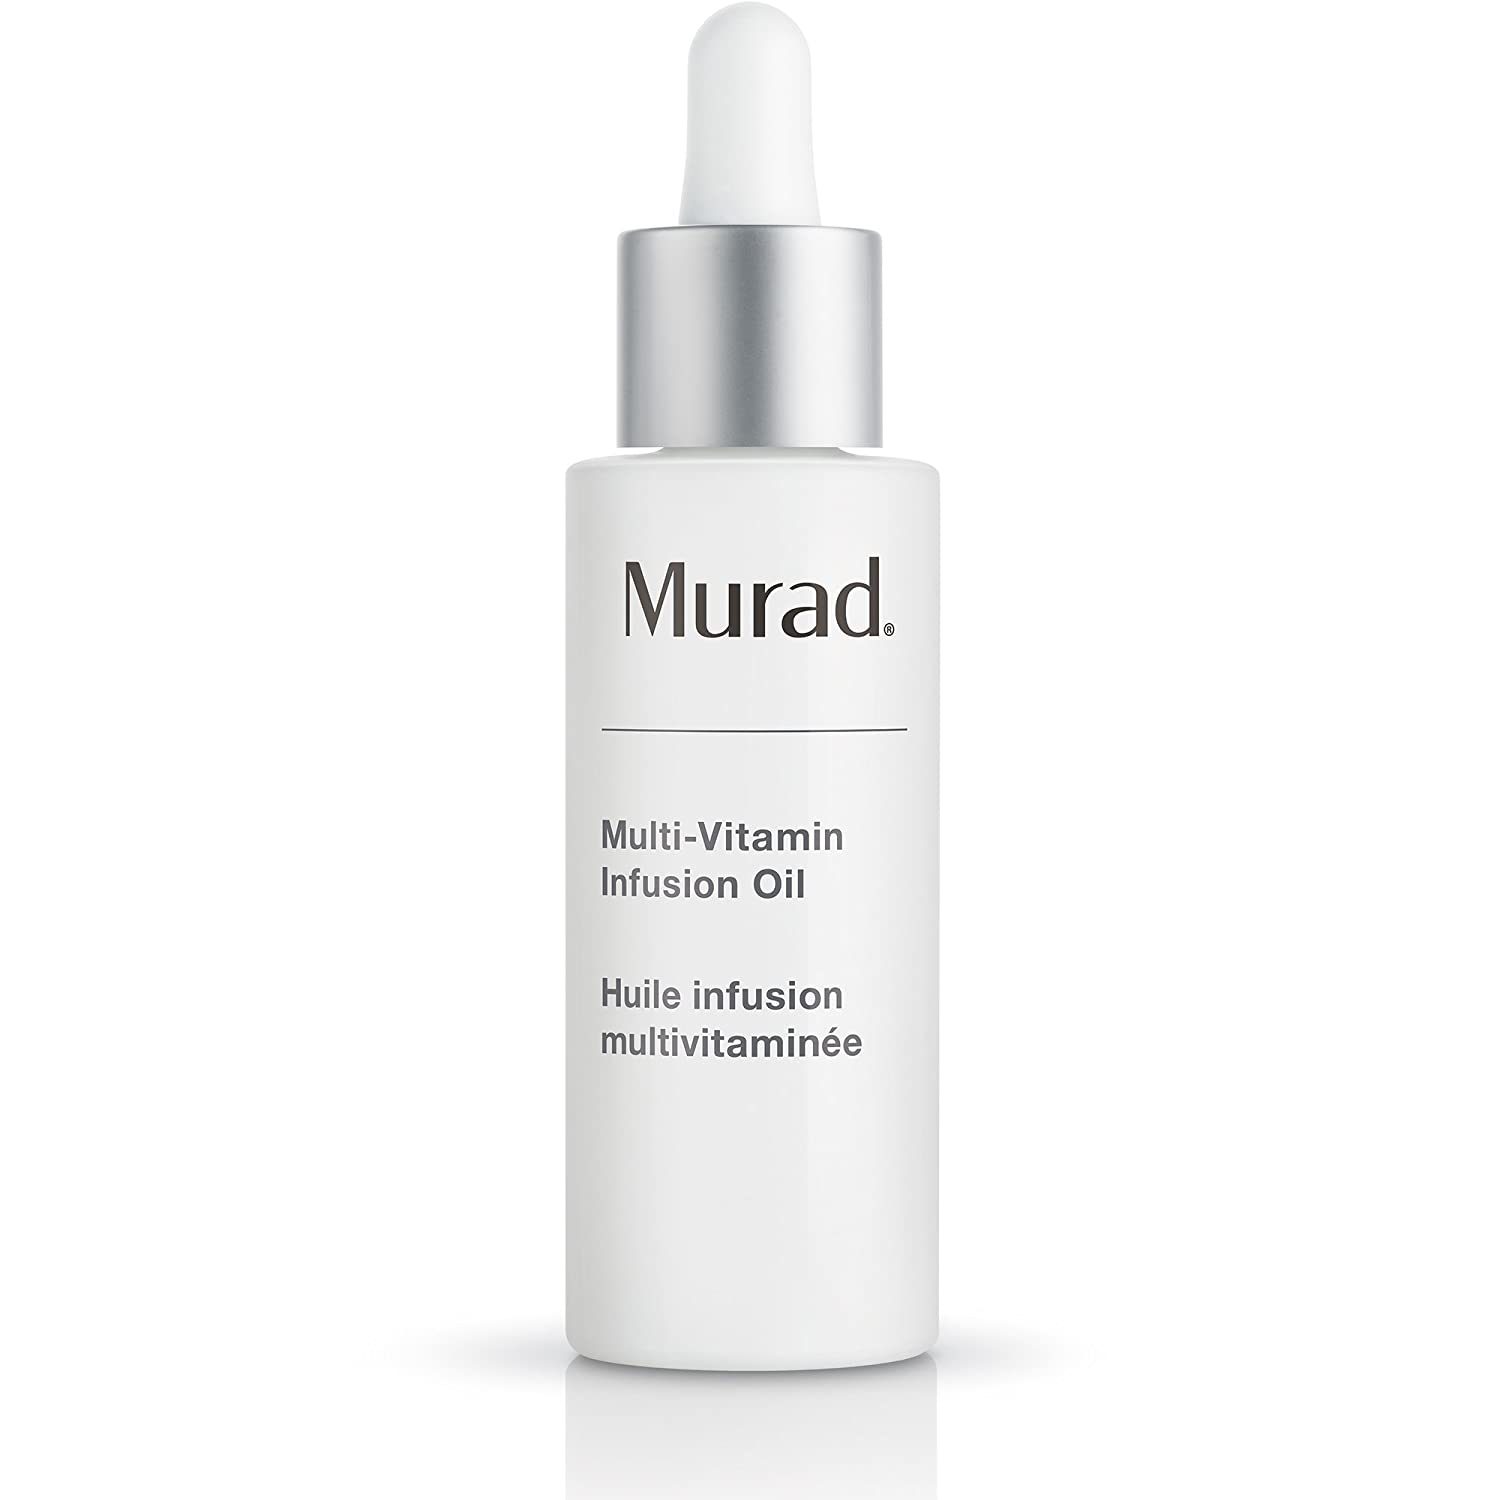 Murad Murad Multi-Vitamin Infusion Oil - (1.0 fl oz) Revolutionary Treatment Oil Powered by 6 Key Vitamins A through F to Target Signs of Aging and Boost Hydration for a Youthful Looking Complexion